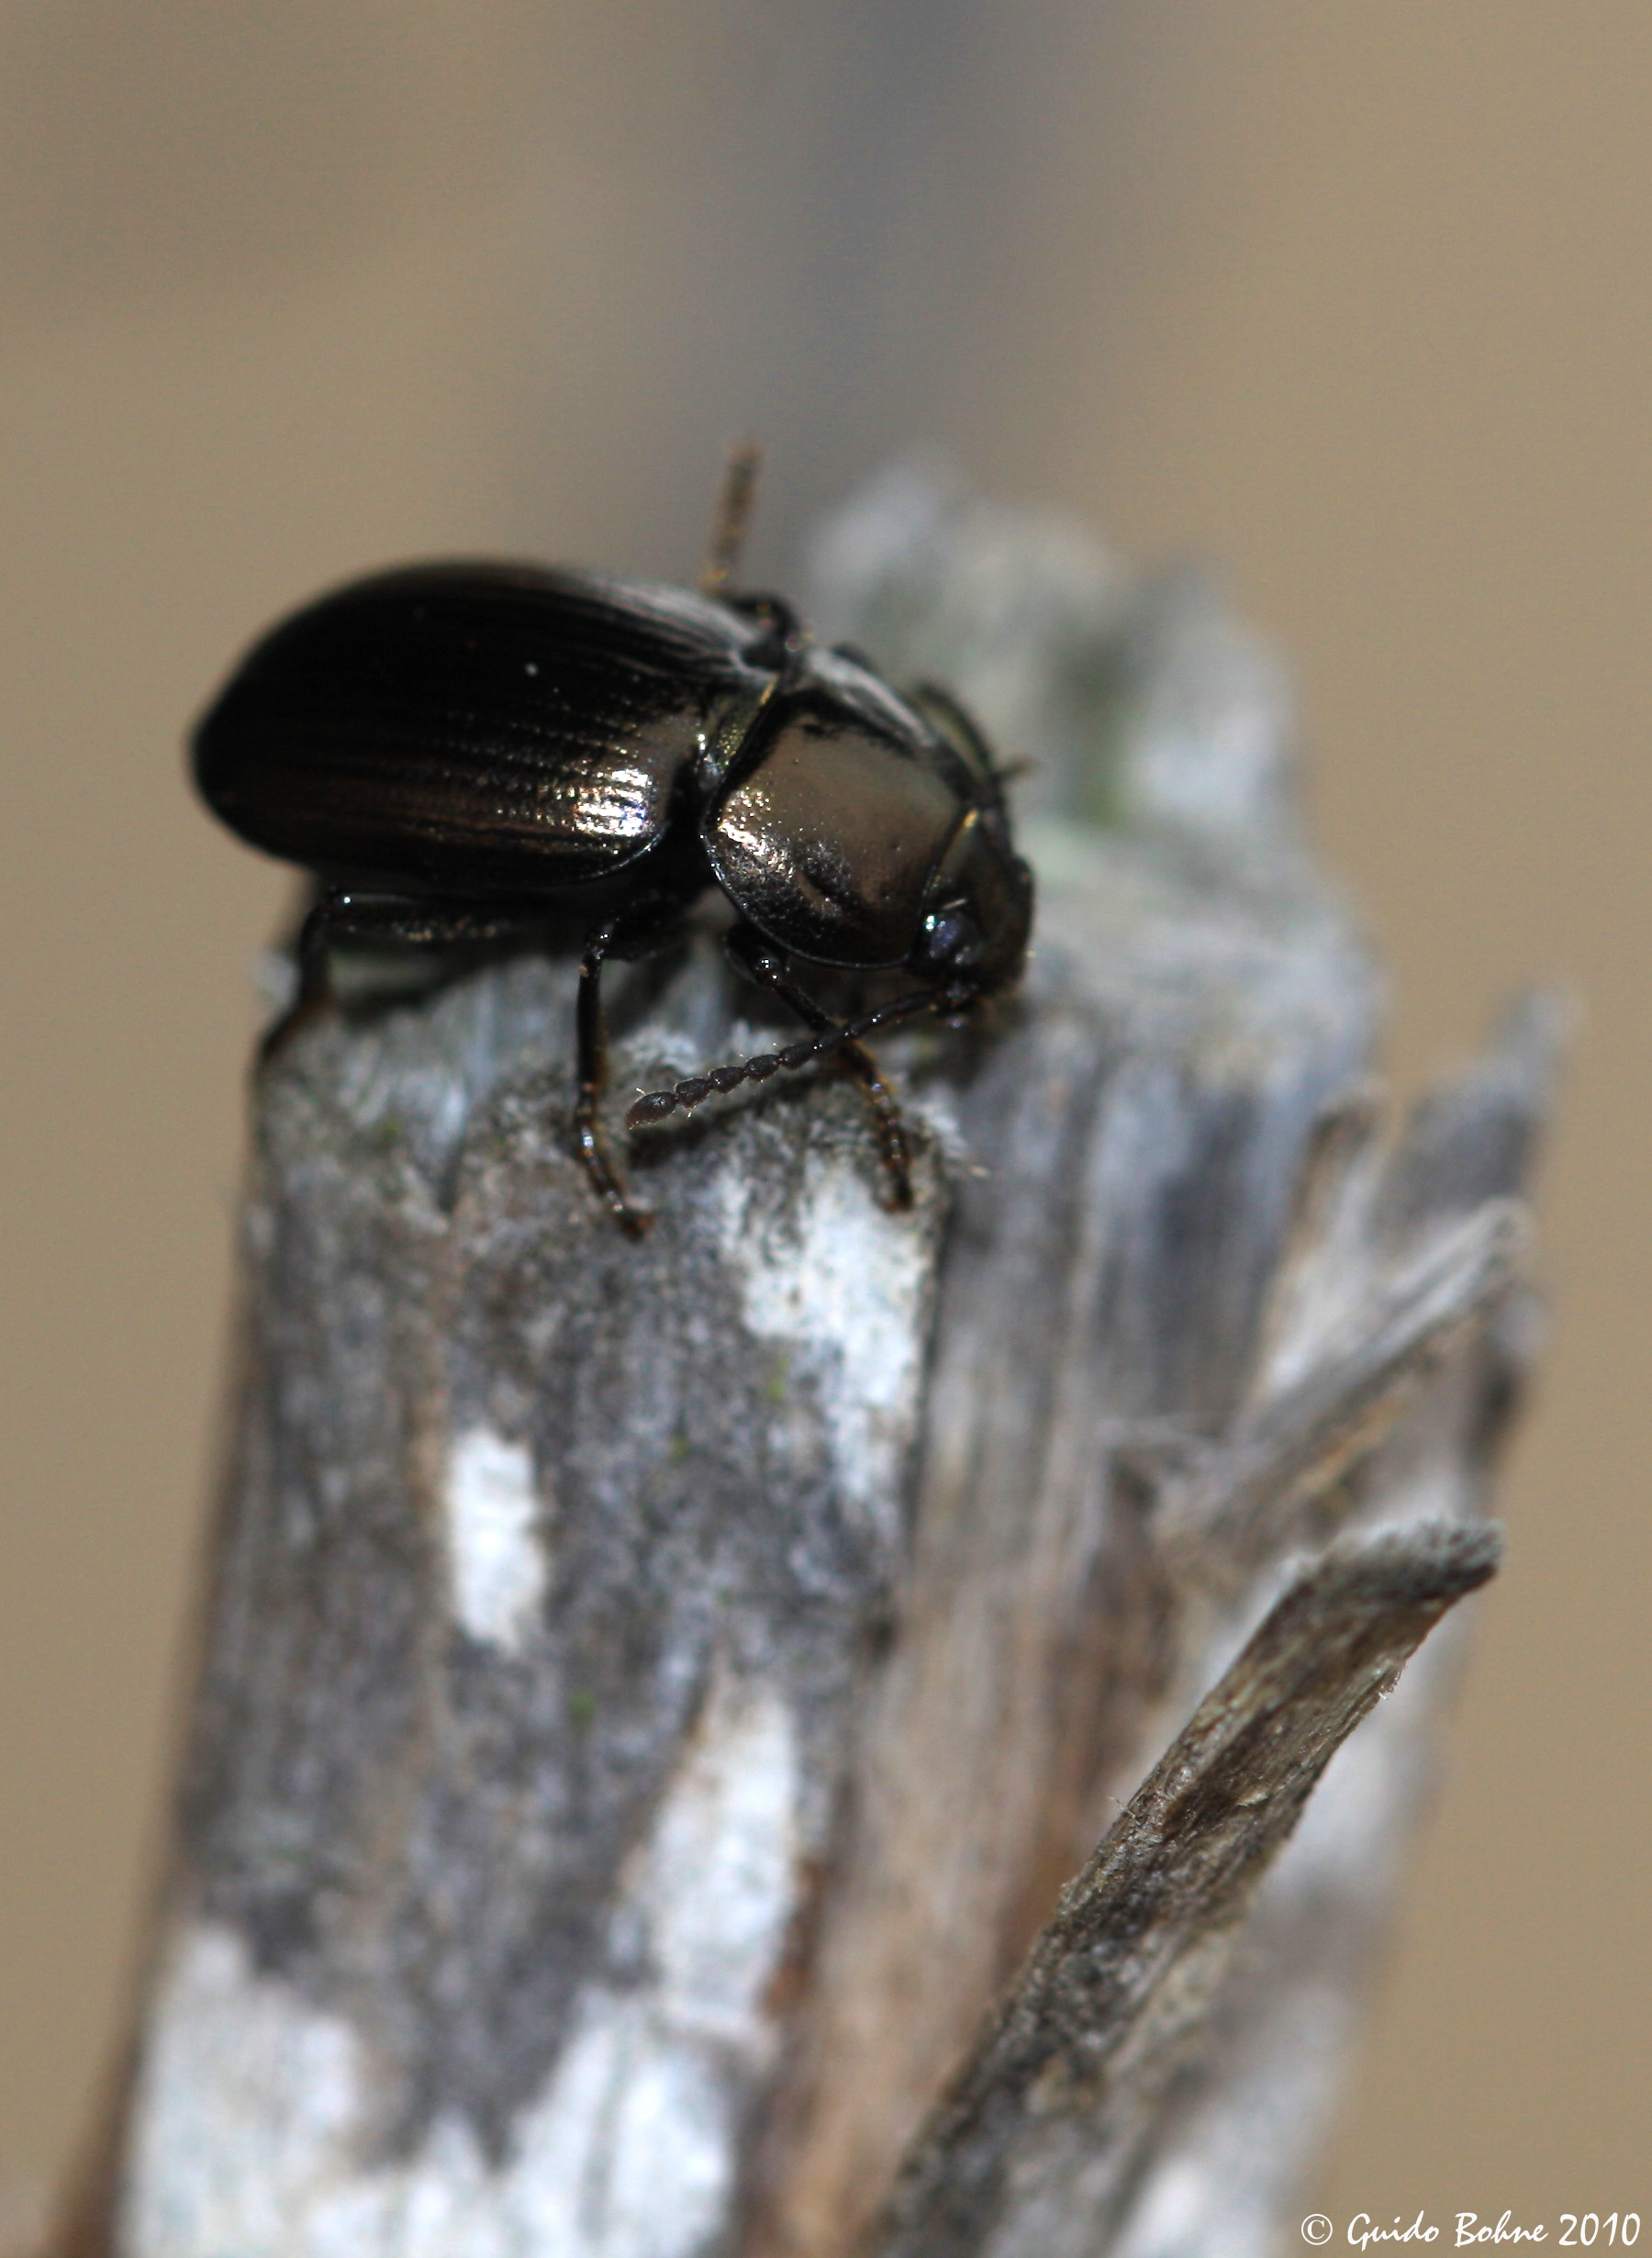 Darkling beetle size - photo#18